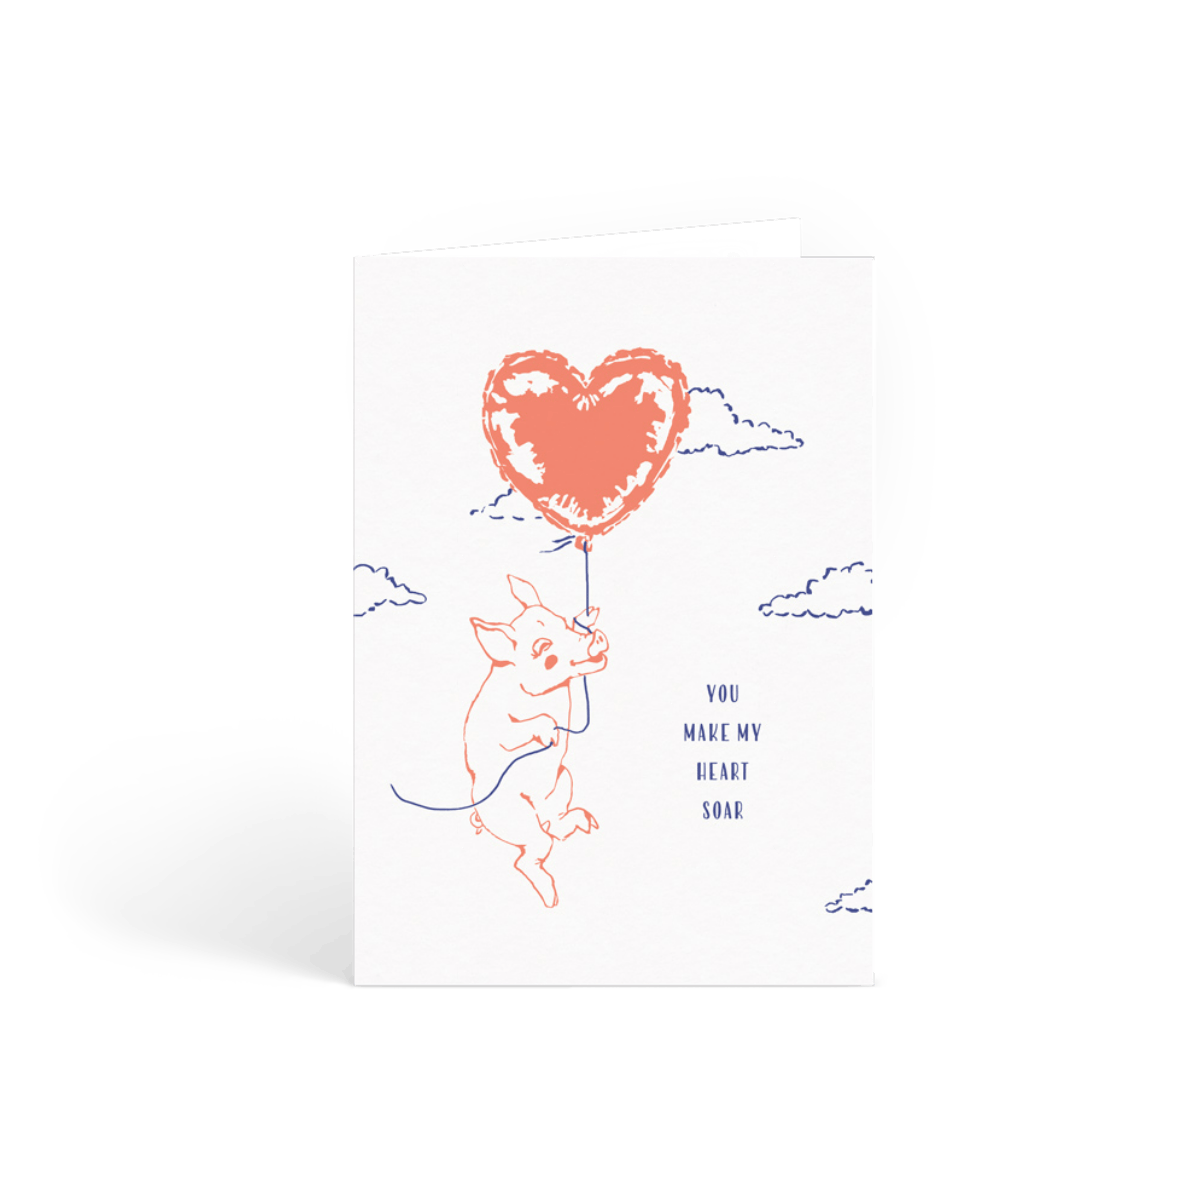 Https%3a%2f%2fwww.papier.com%2fproduct image%2f41475%2f2%2fmake my heart soar 10575 front 1531478983.png?ixlib=rb 1.1